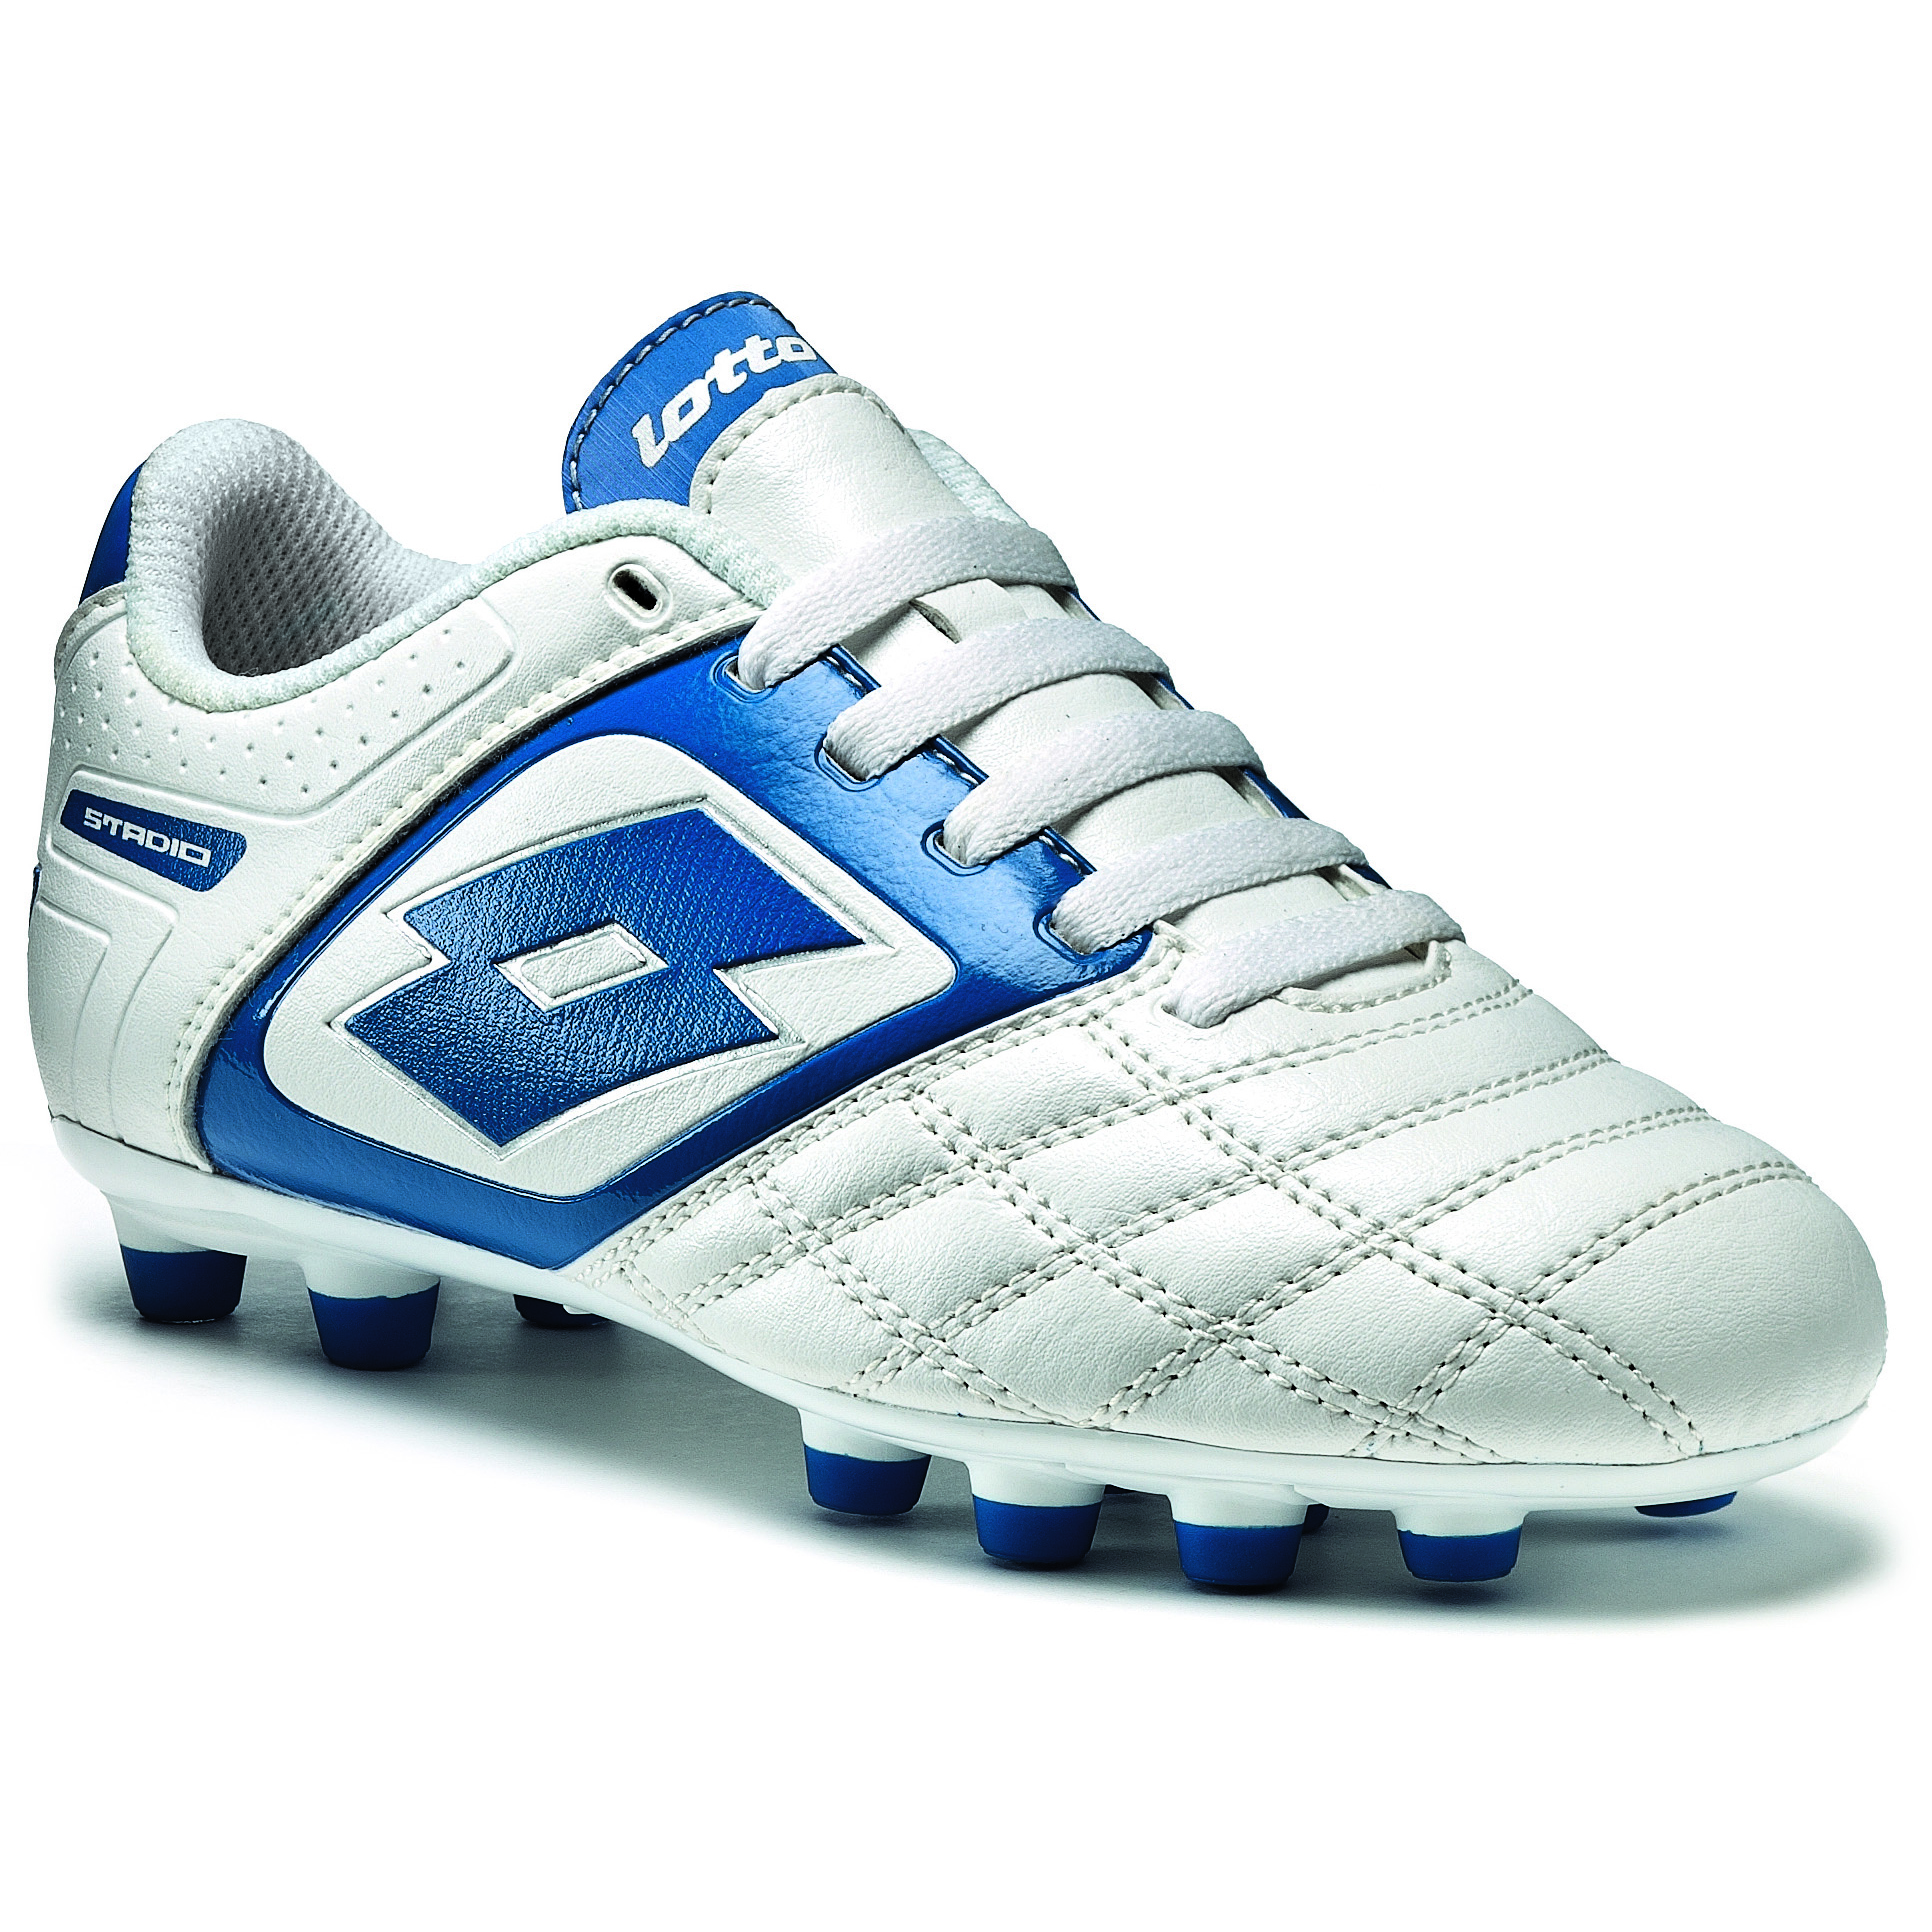 Lotto Stadio Potenza II 700 Firm Ground Football Boots - White/Blue - Kids